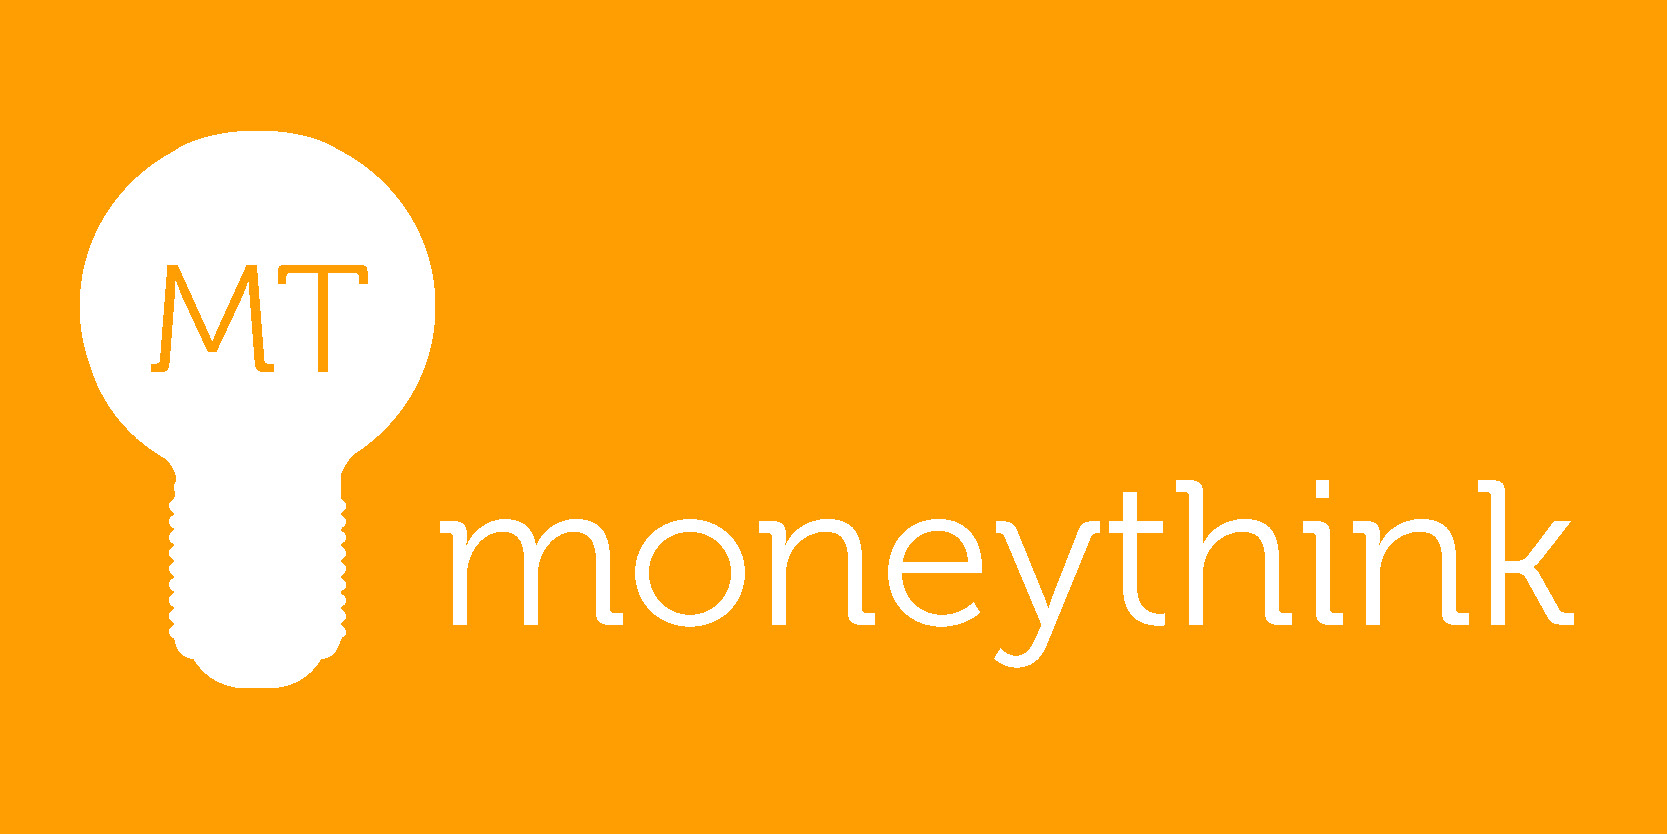 http://moneythink.org/